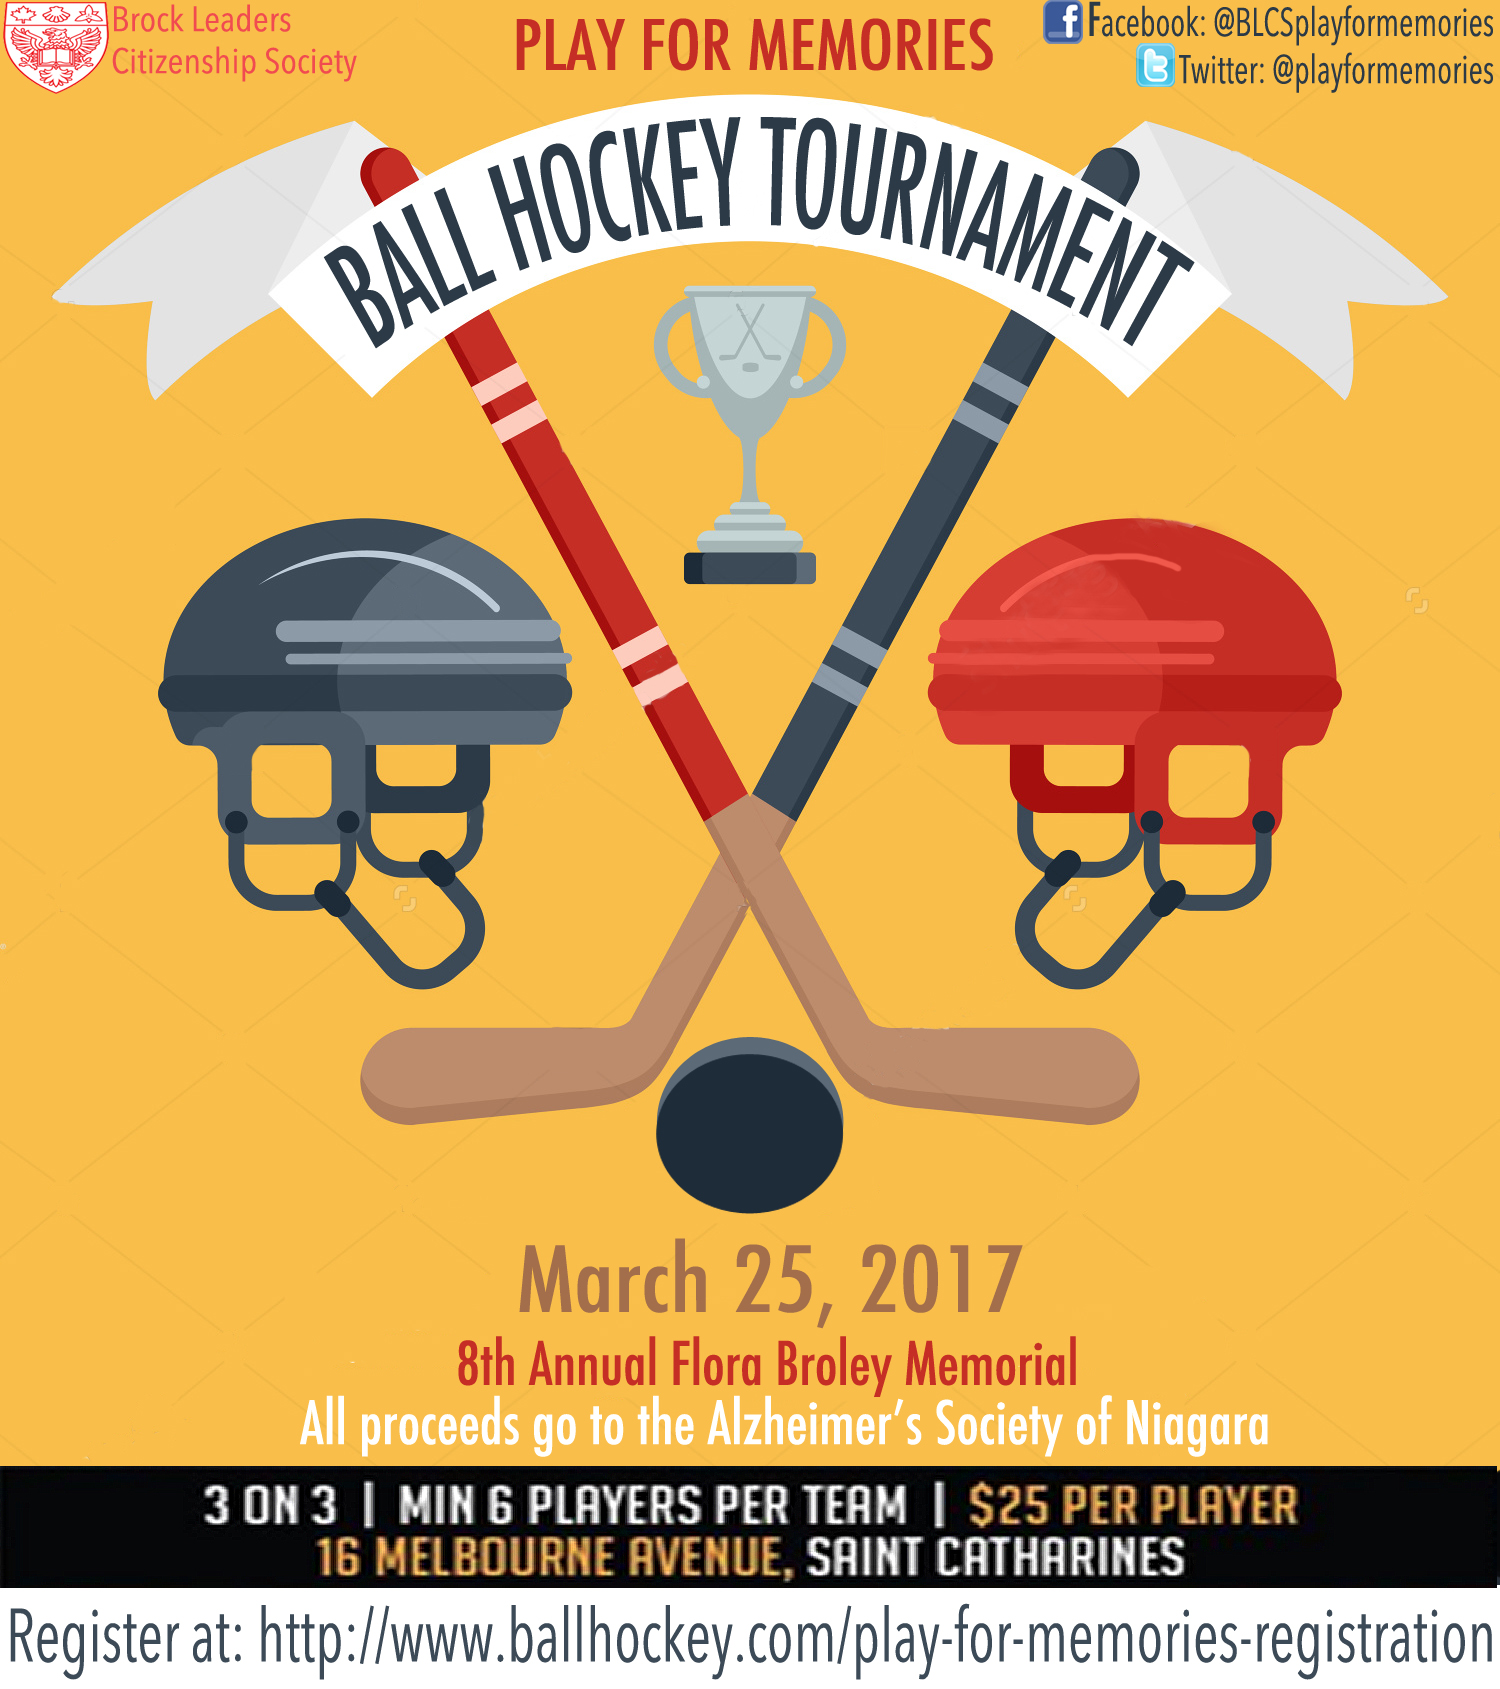 PLAY FOR MEMORIES BALL HOCKEY TOURNAMENT